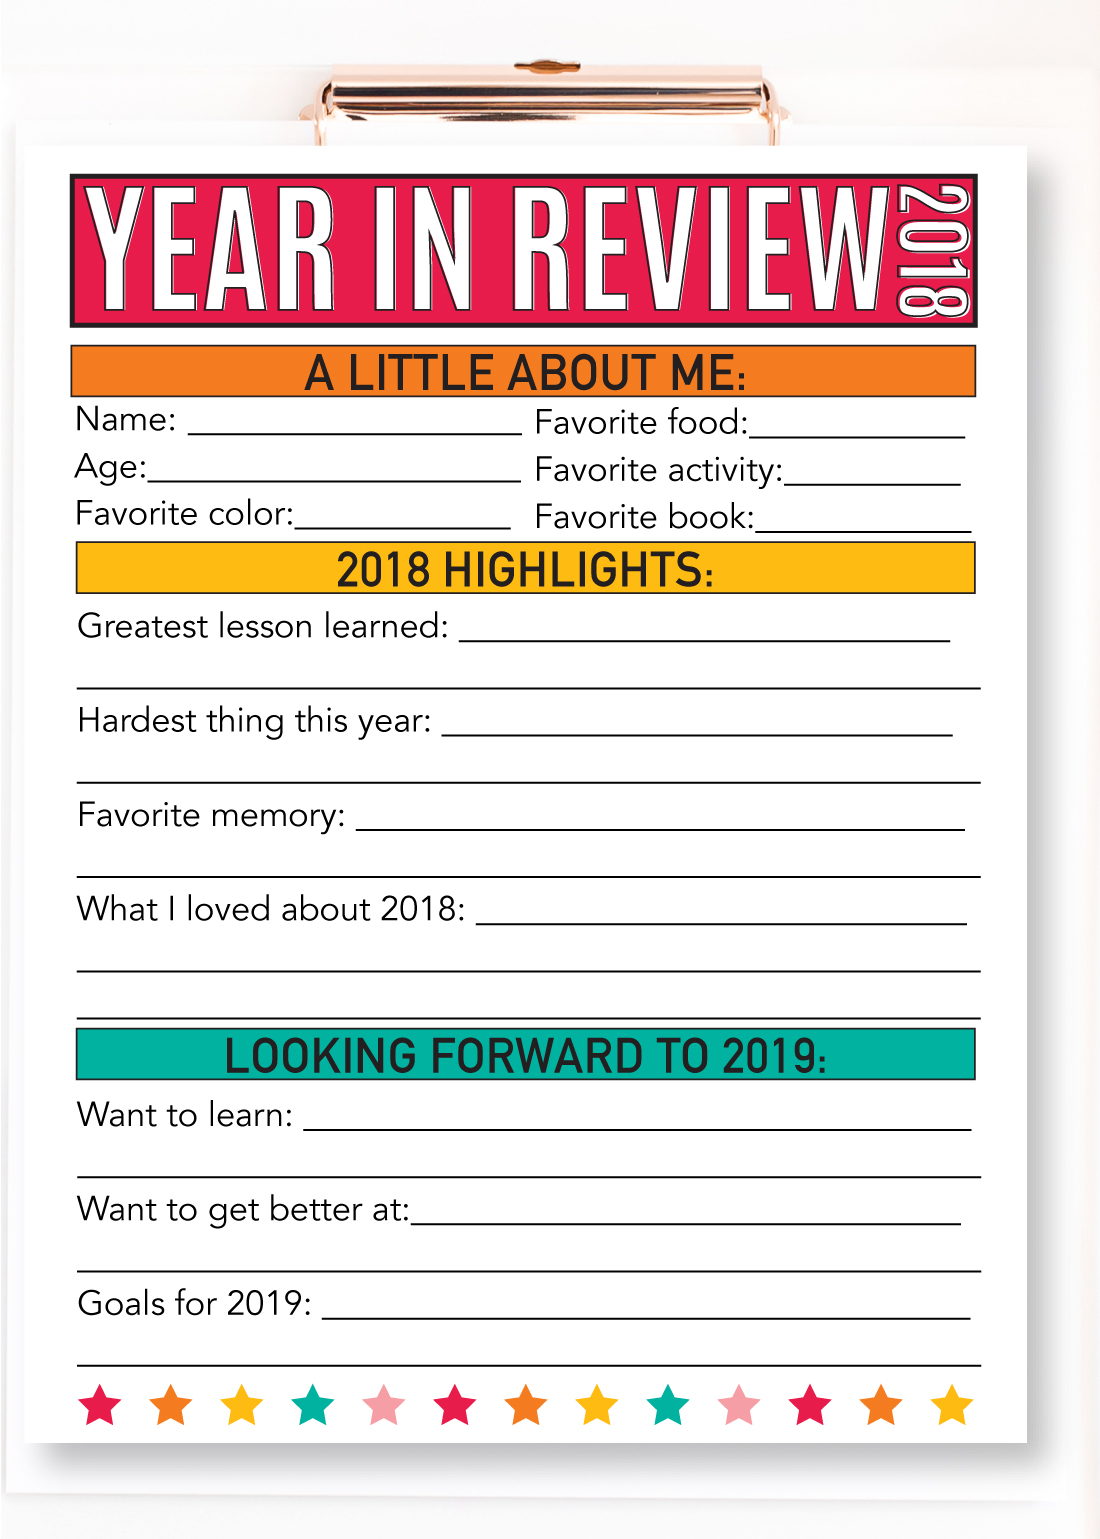 Updated year in review 2018 have your kids fill this sheet out every year